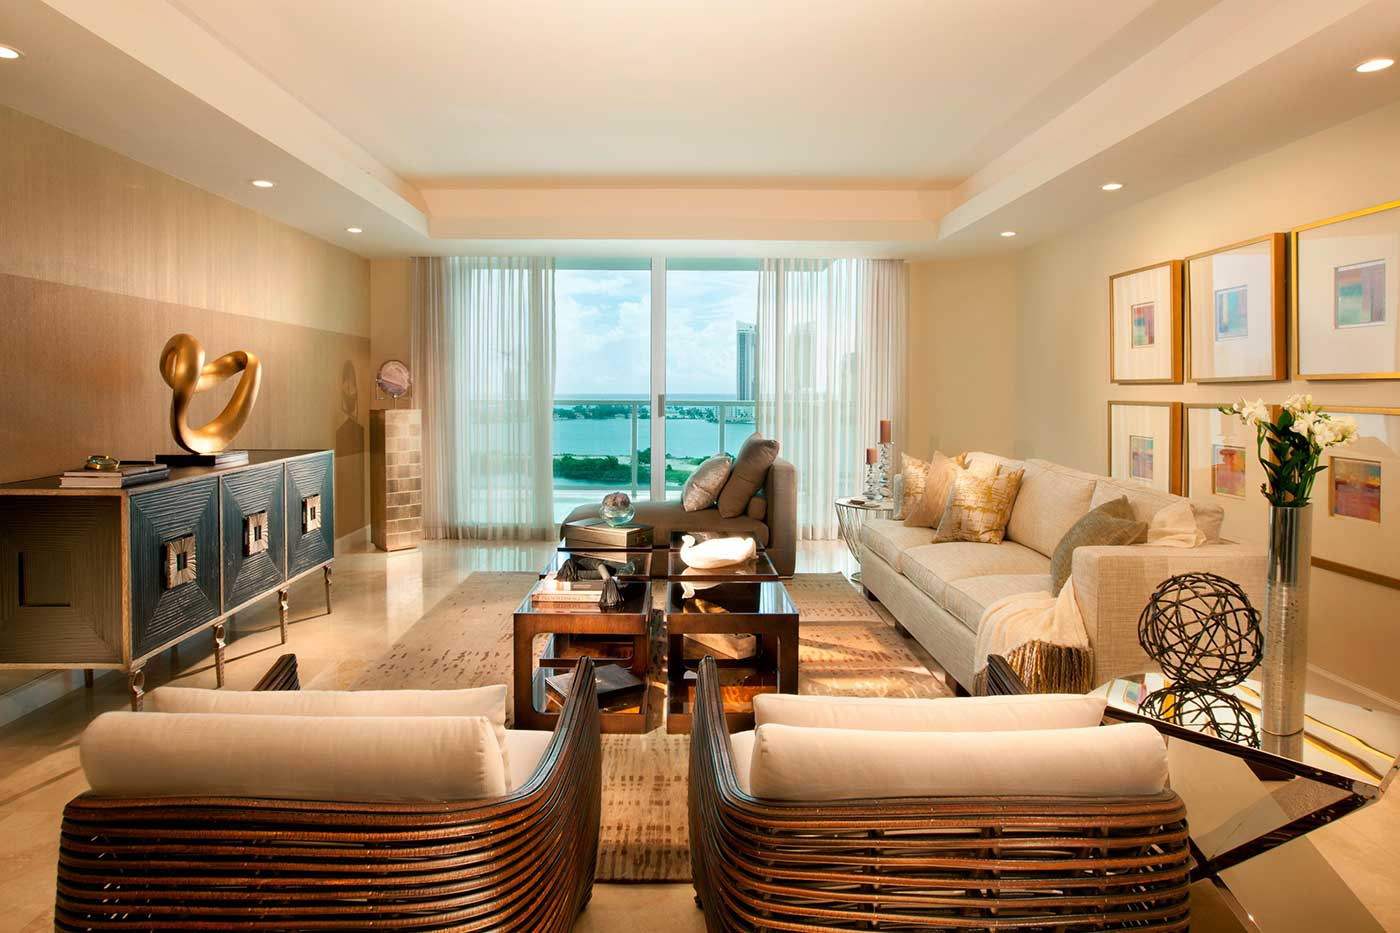 Miami Interior Design - Sablosky Living Room